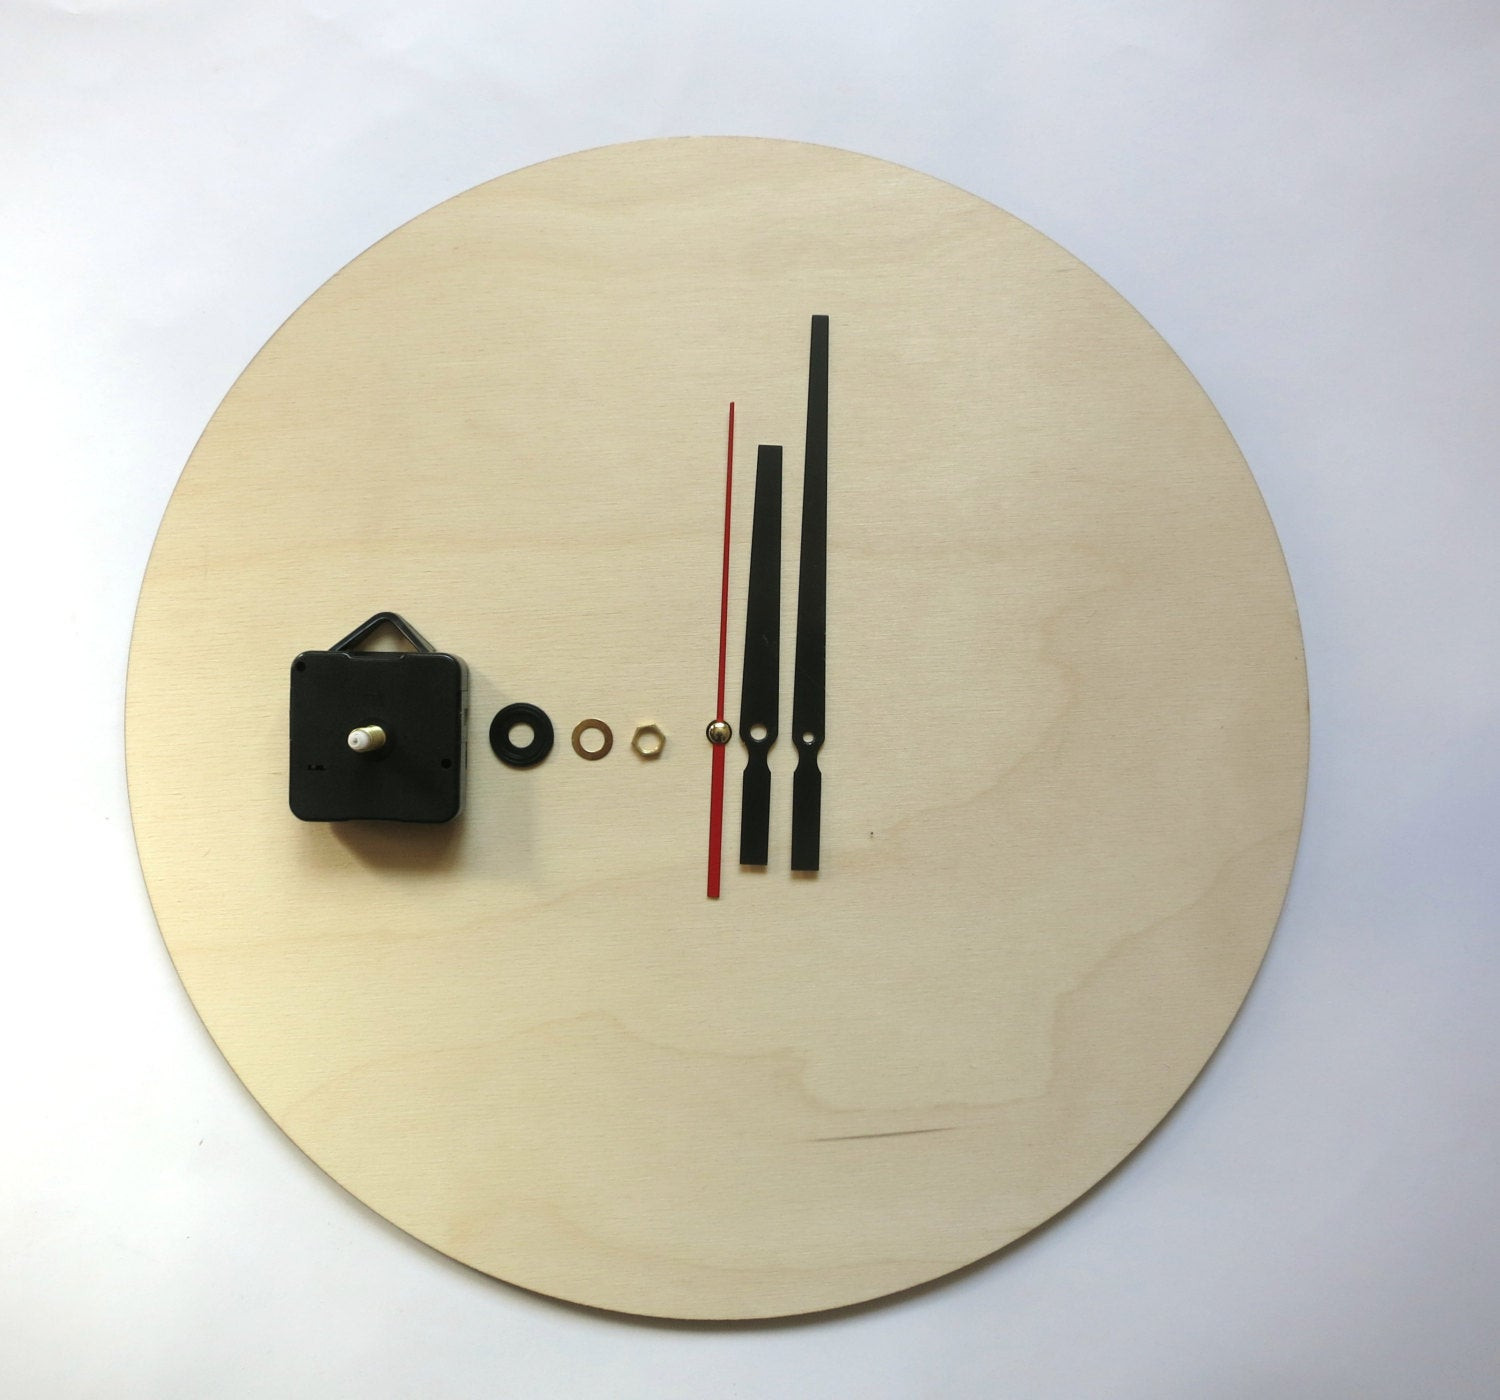 Best ideas about DIY Wood Clocks . Save or Pin Clock kit DIY Wall clock kit 16 40cm diy clock wood Now.